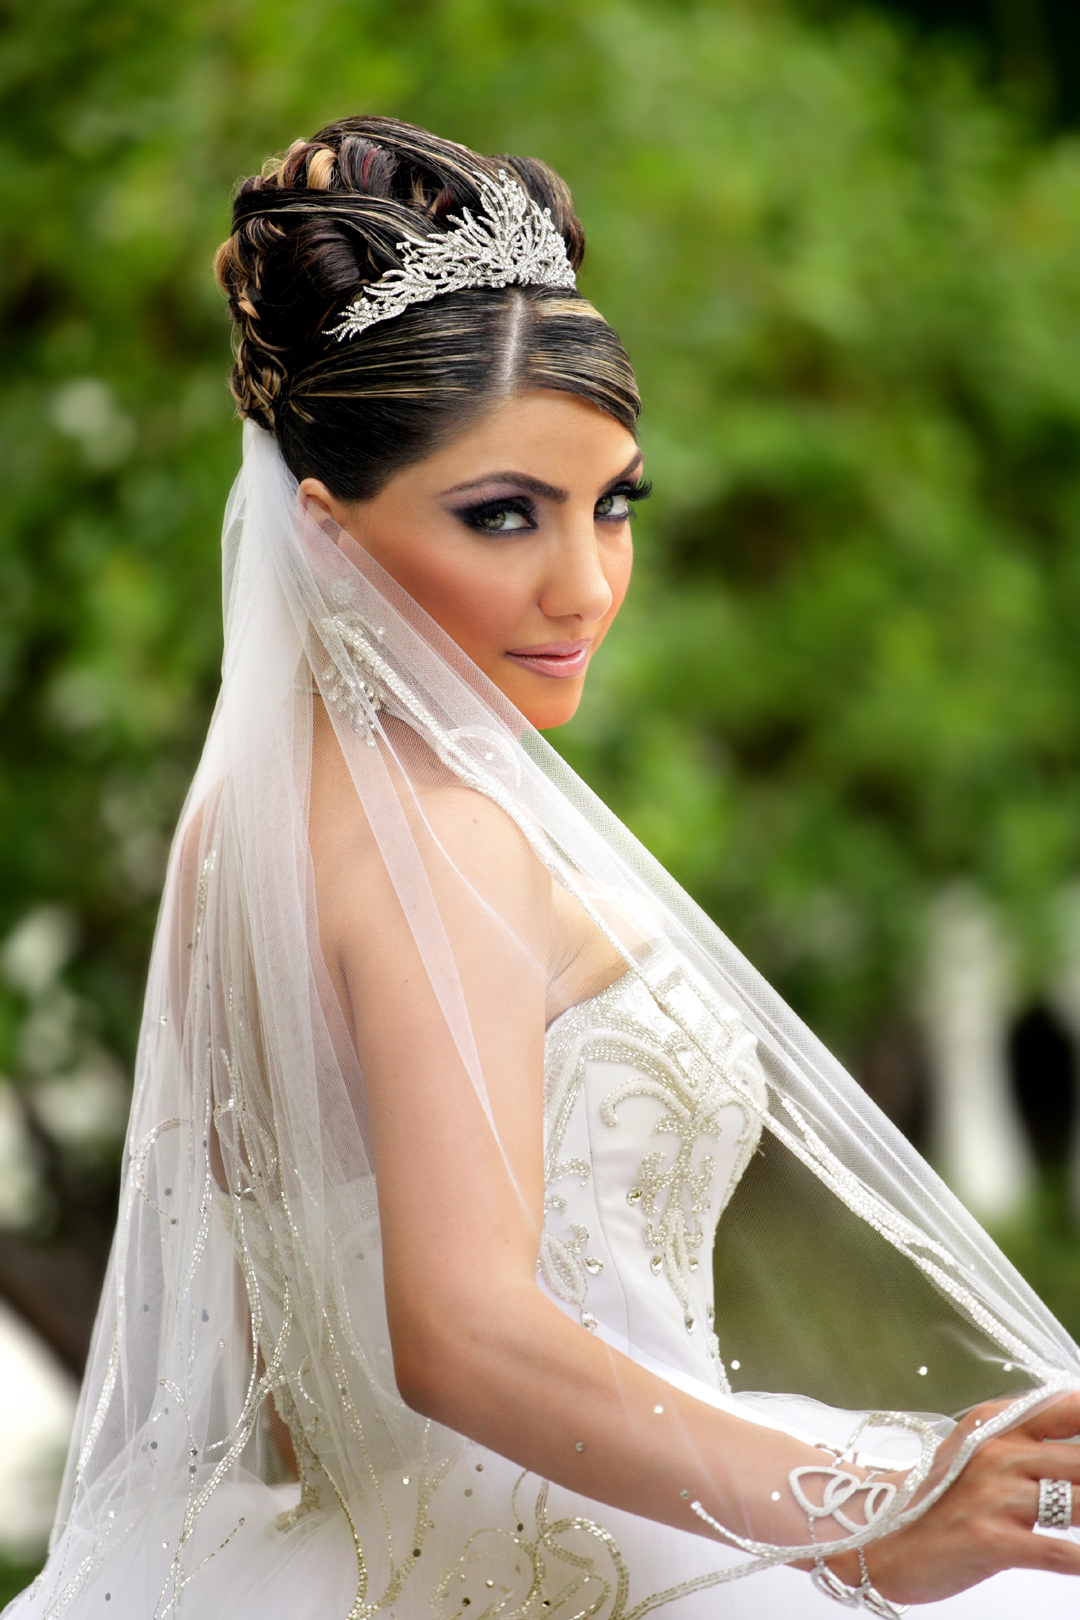 Hair and makeup by Bella Nella Bride